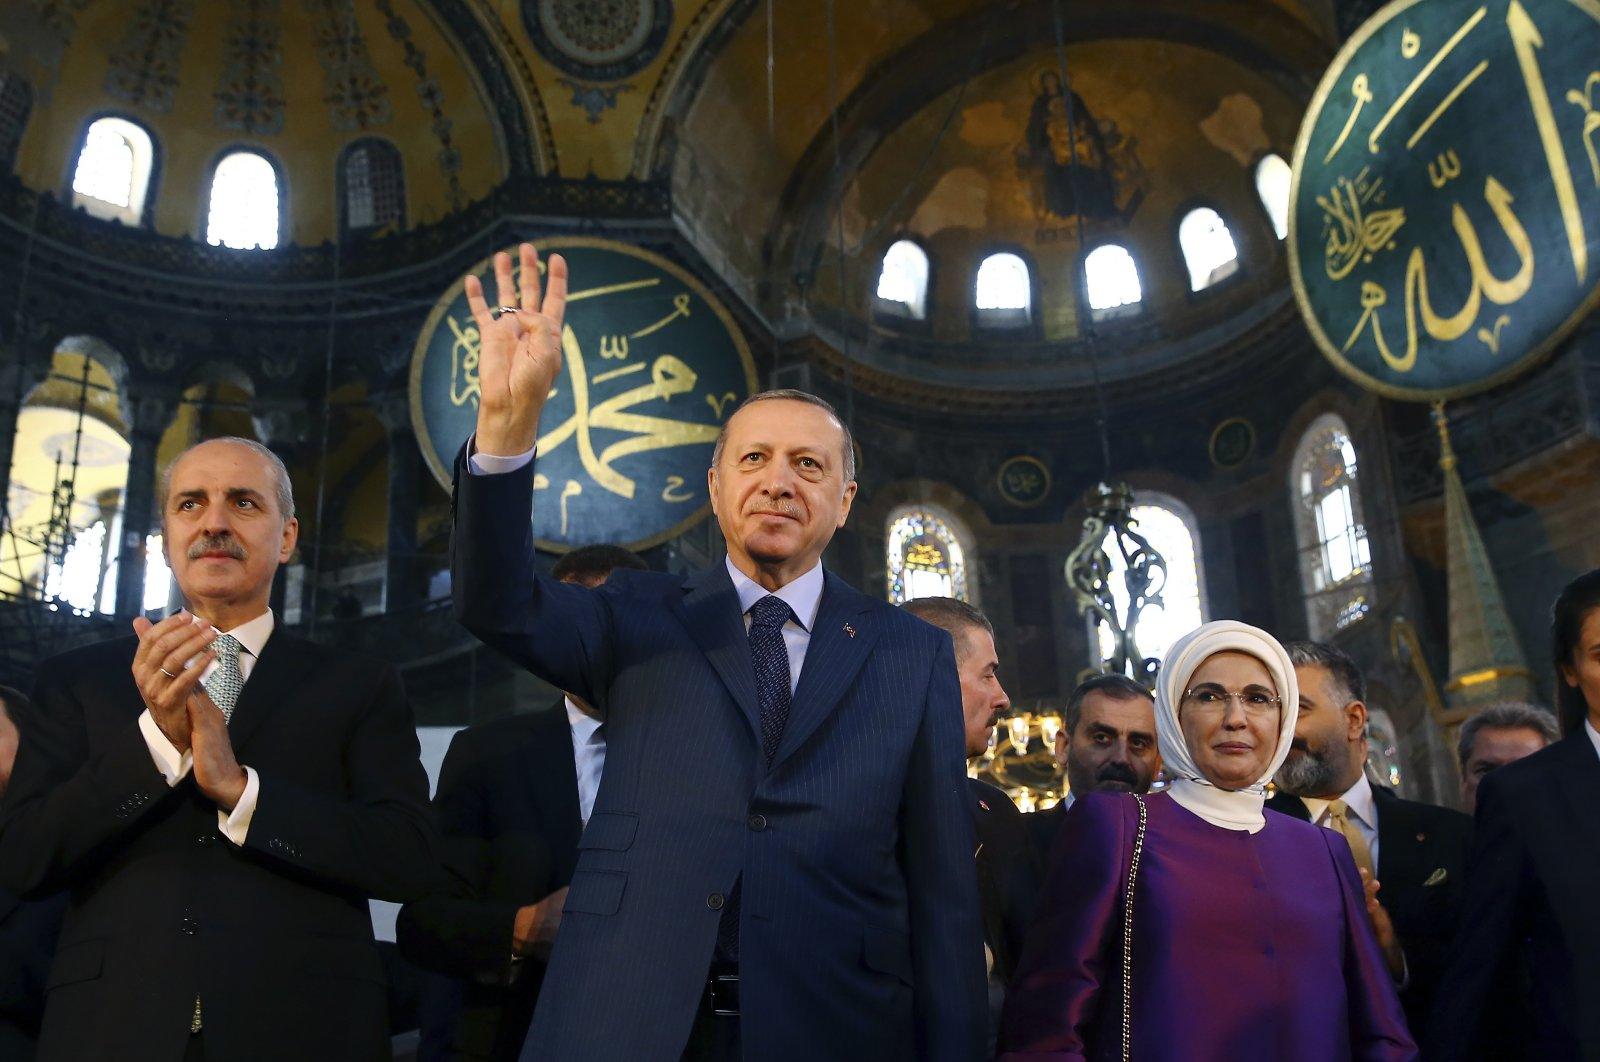 President Recep Tayyip Erdoğan accompanied by his wife Emine Erdoğan waves to supporters as he walks in the Hagia Sophia in the historic Sultanahmet district of Istanbul, March 31, 2018. (AP Photo)